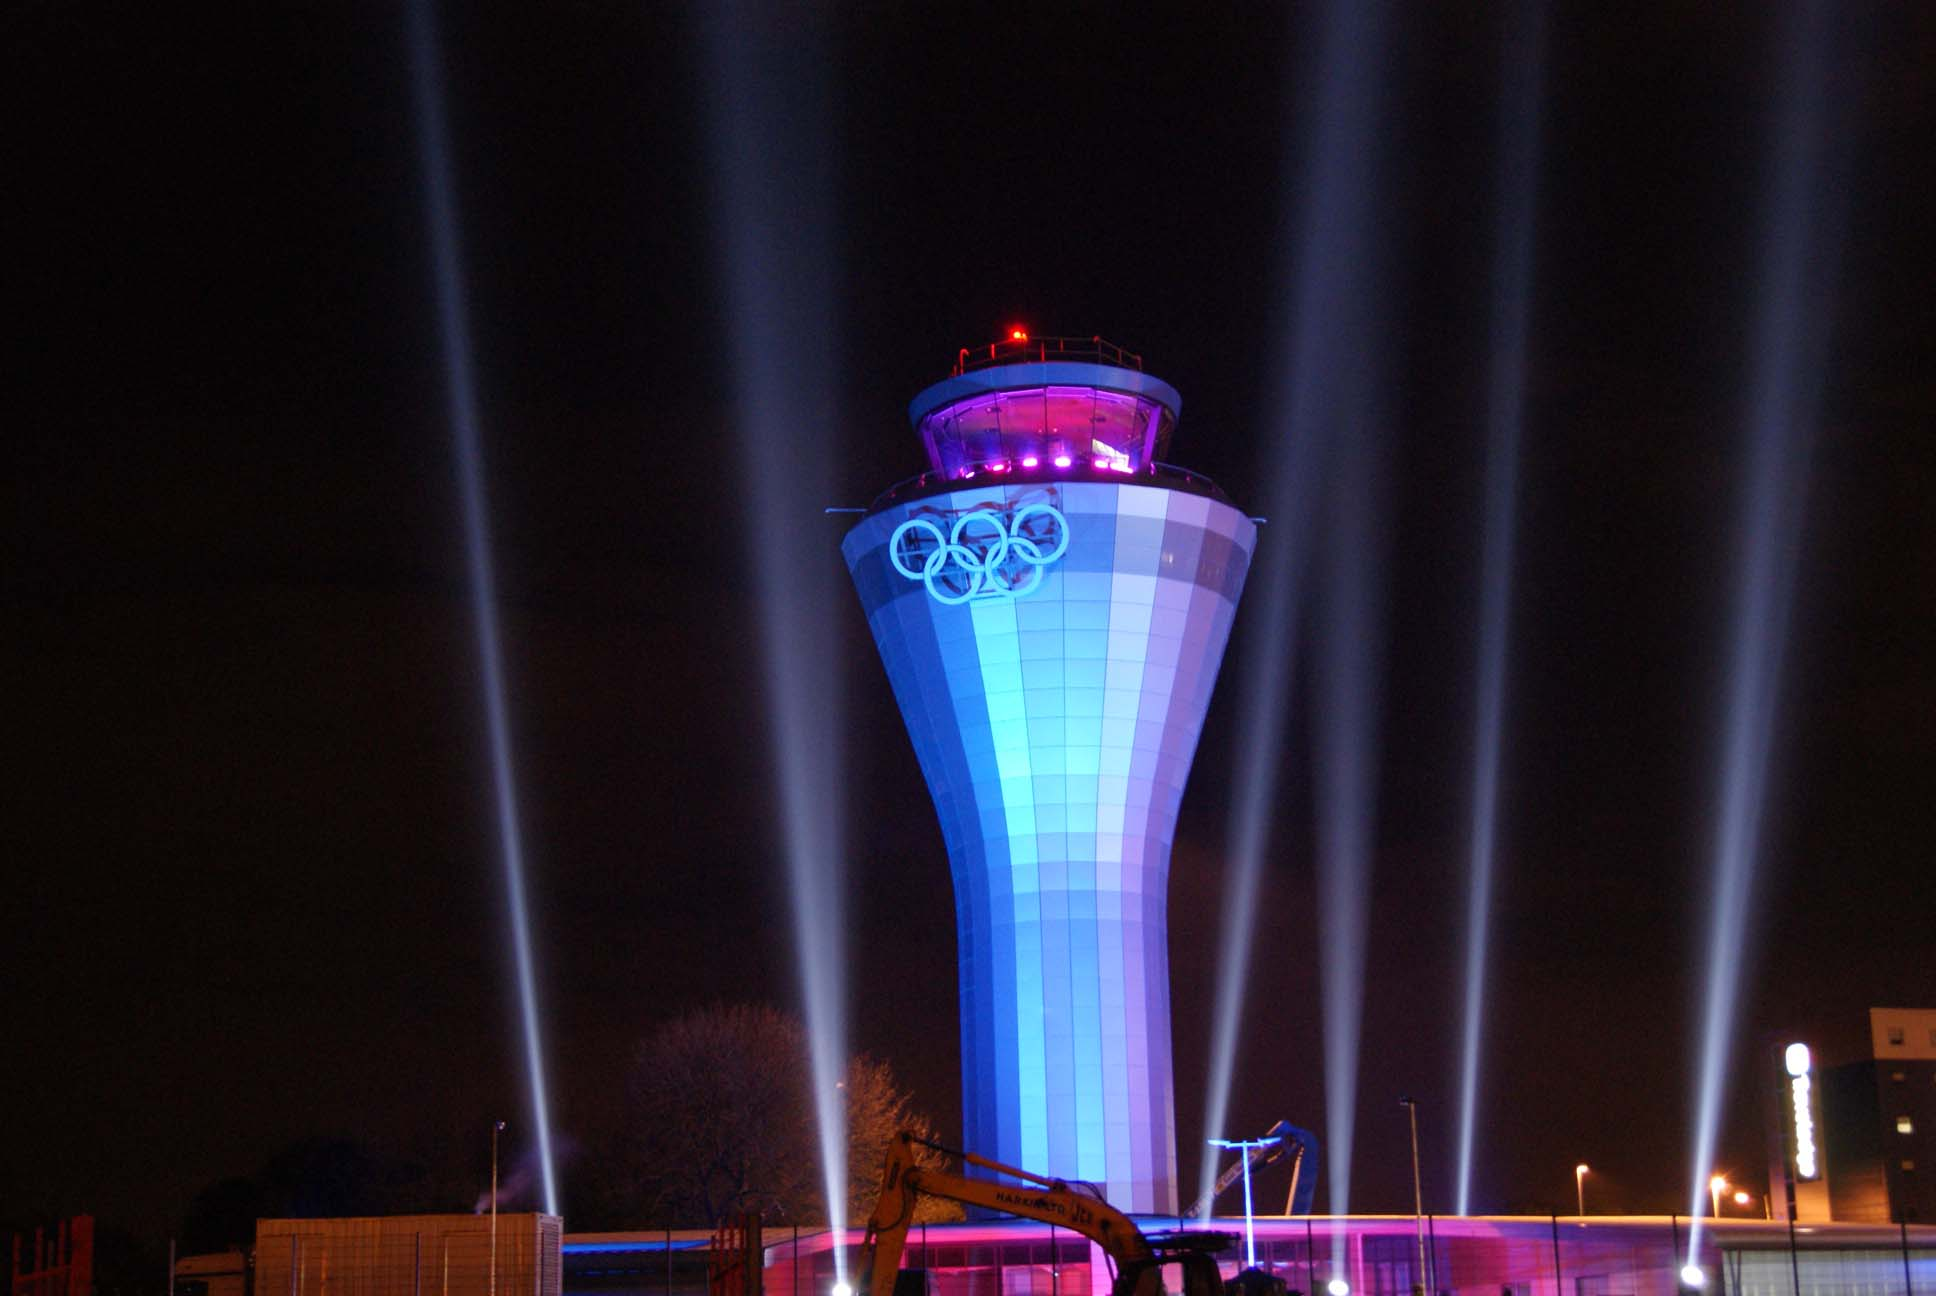 Birmingham airport reveal the Giant welcoming Olympic rings a massive searchlight show